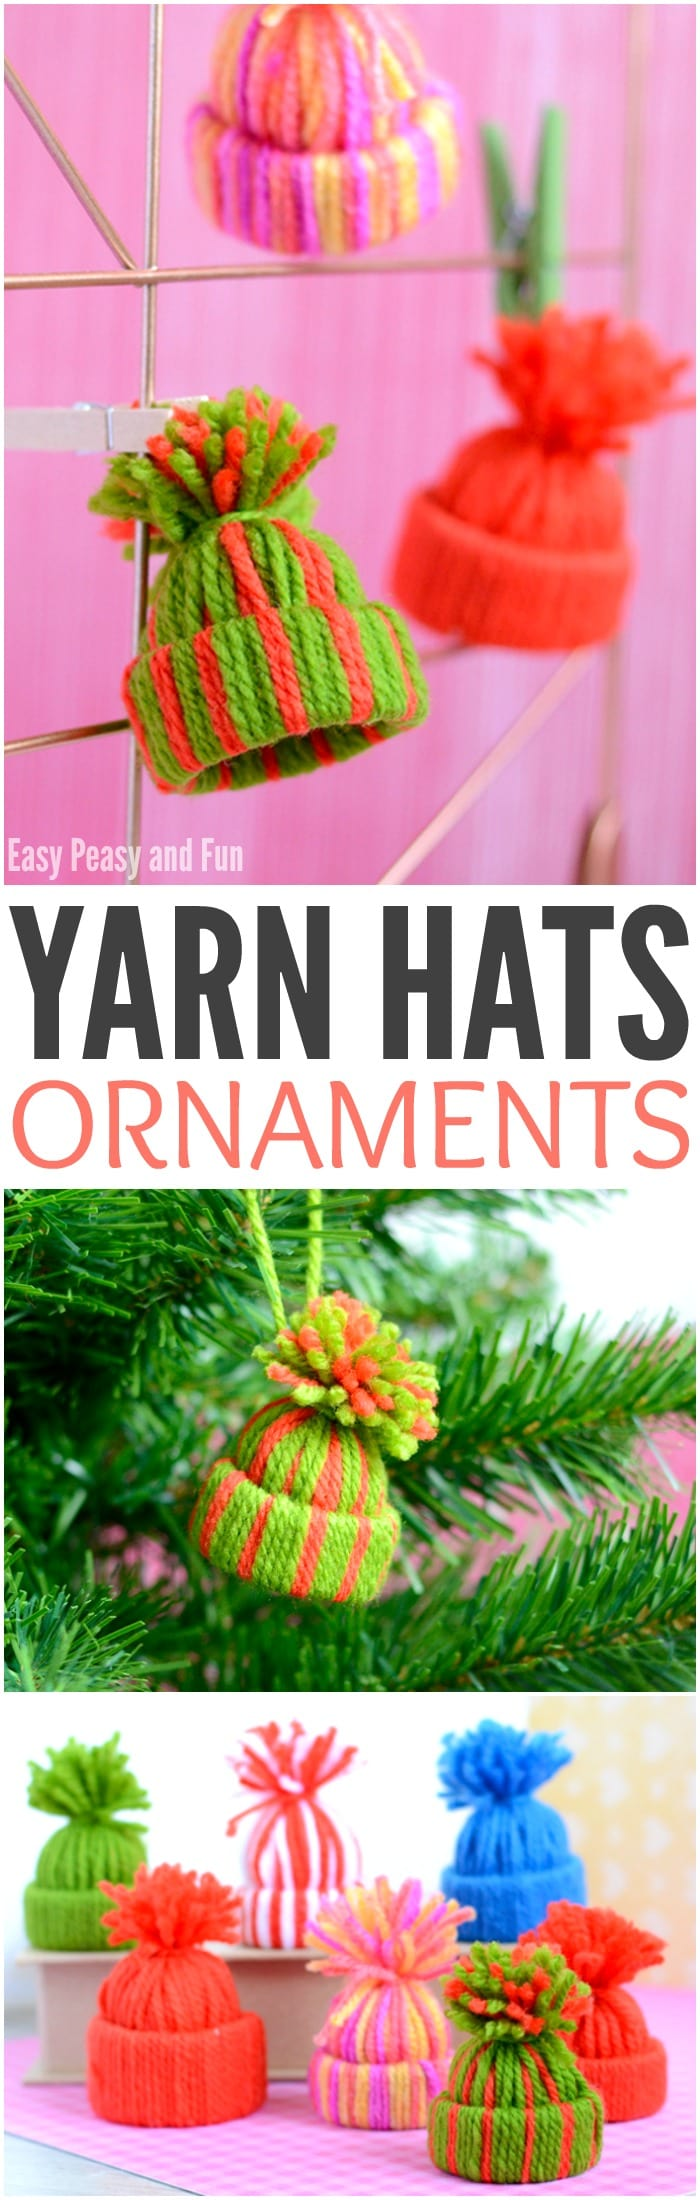 Mini Yarn Hats Ornaments Diy Christmas Ornaments Easy Peasy And Fun